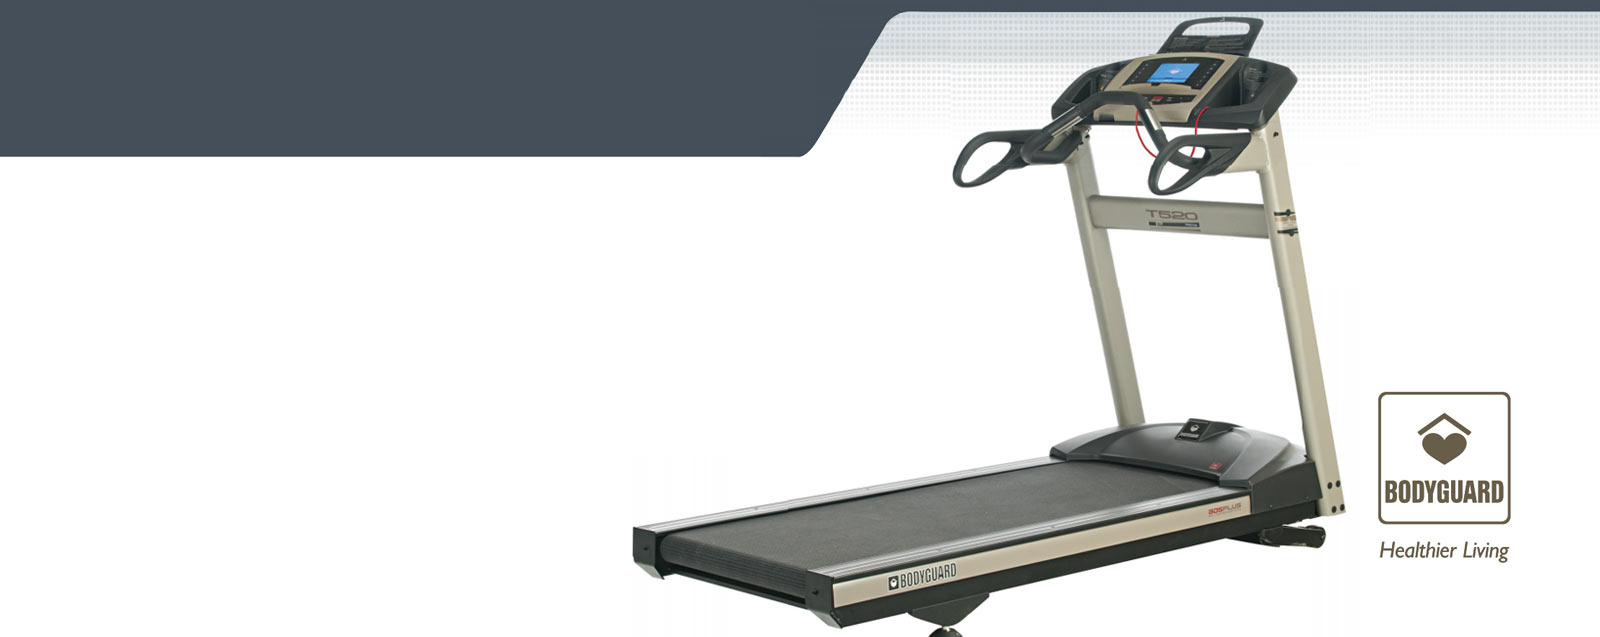 Bodyguard Fitness Equipment at Fitness Showrooms